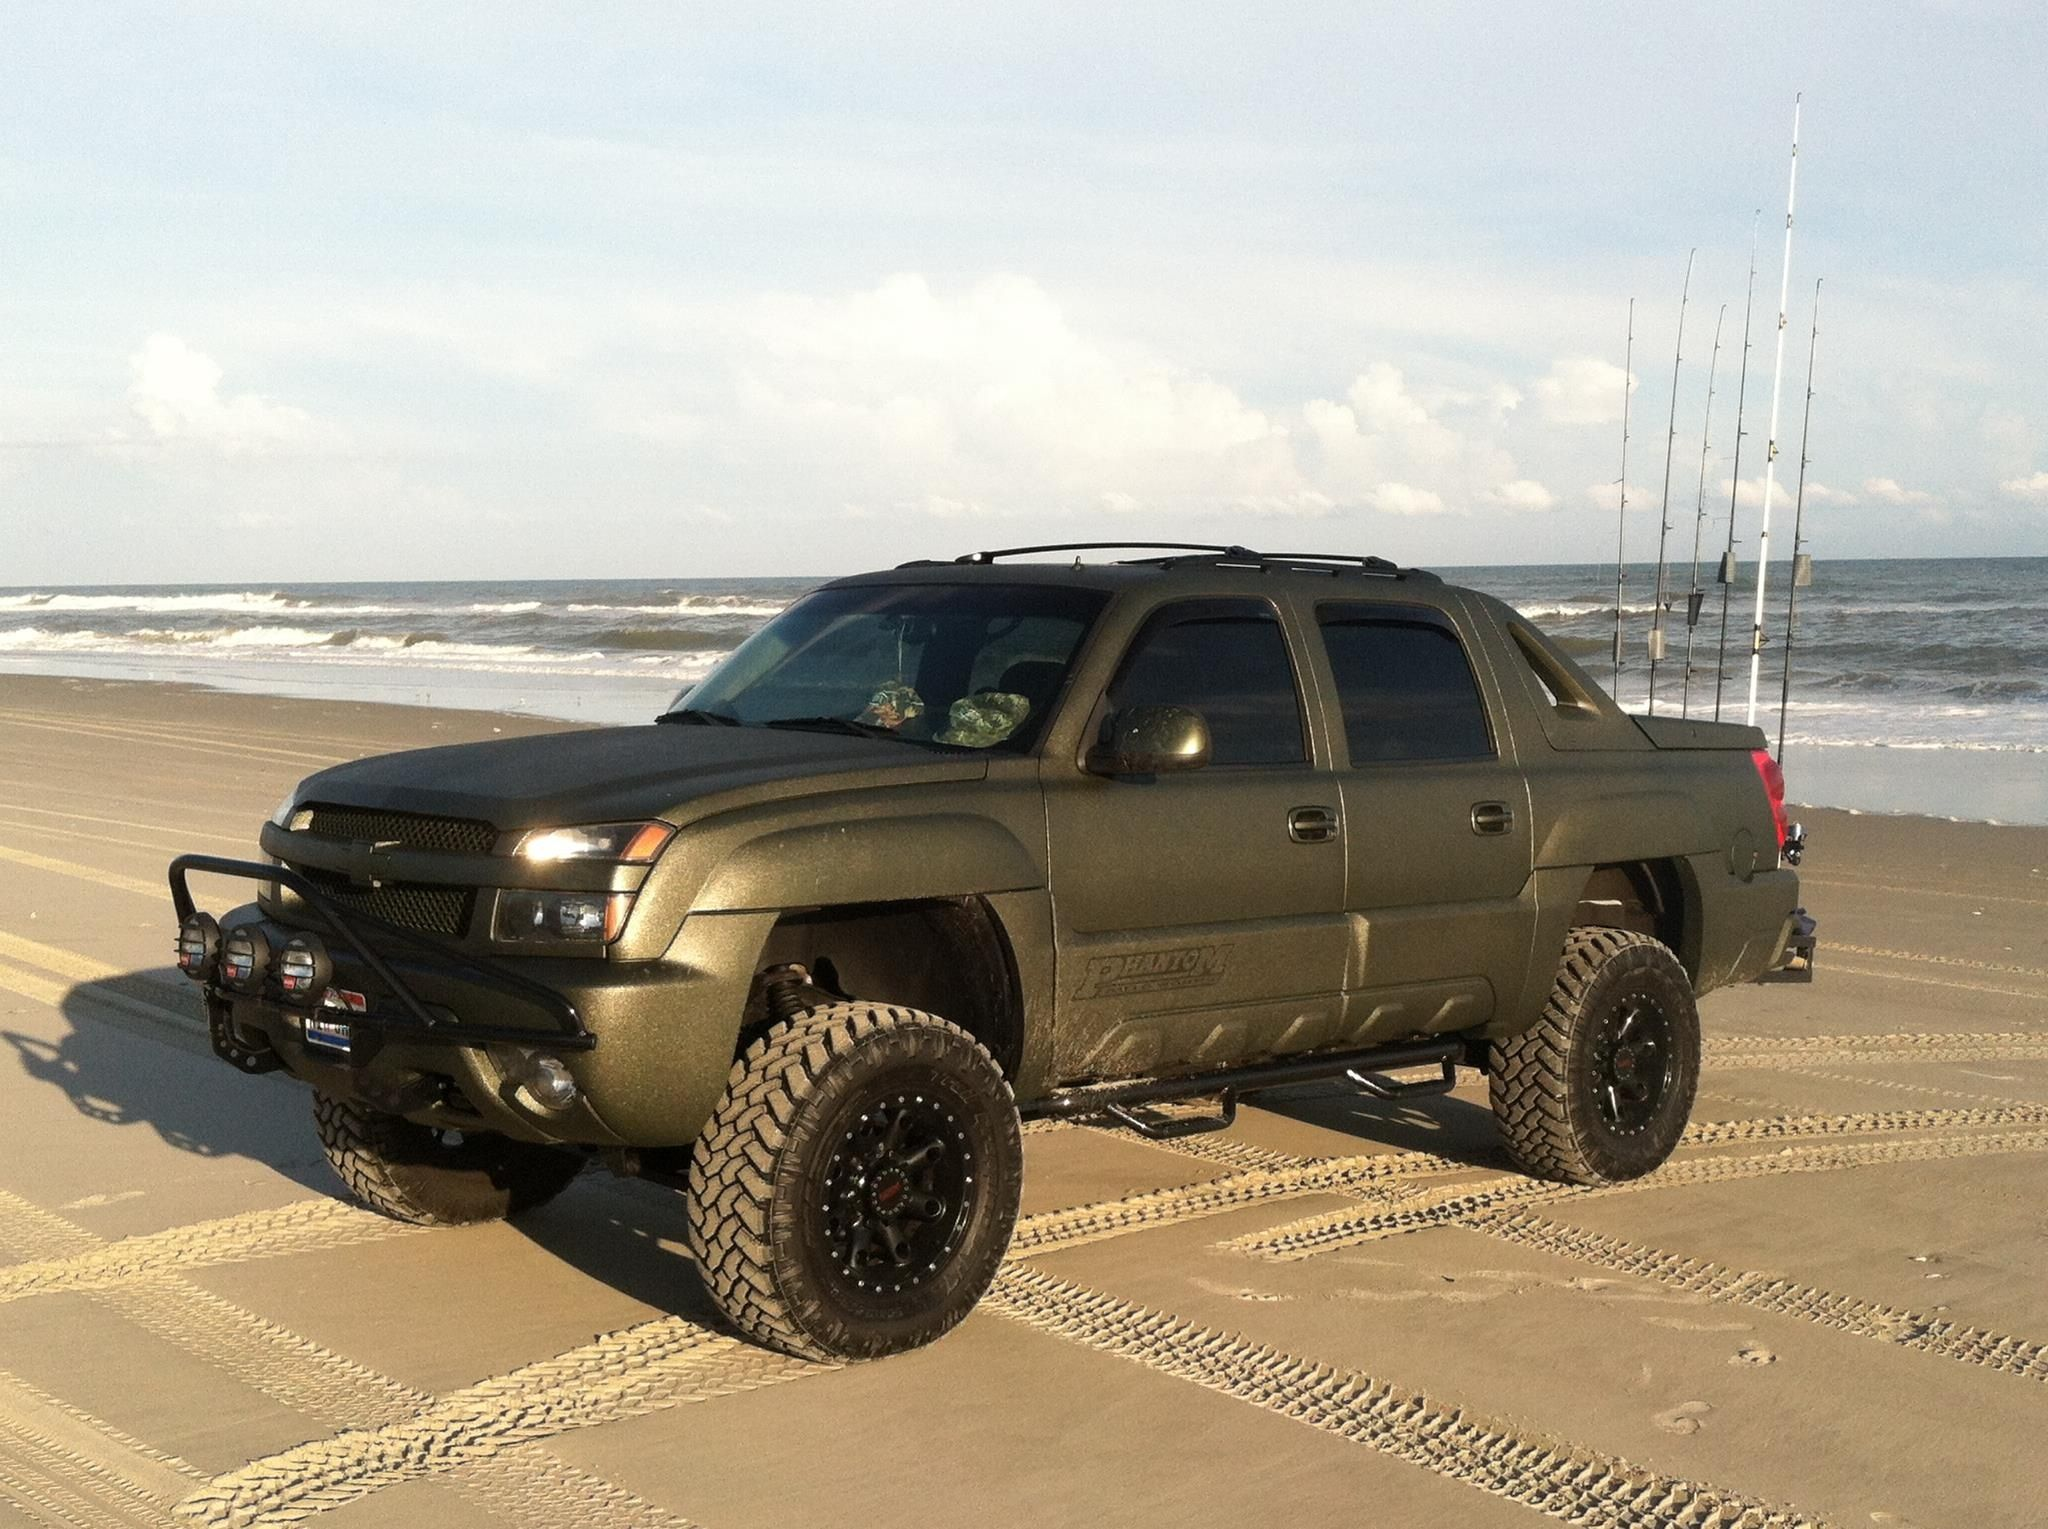 Chevy Avalanche Tricked Out Chevy Avalanche Chevy Avalanche Truck